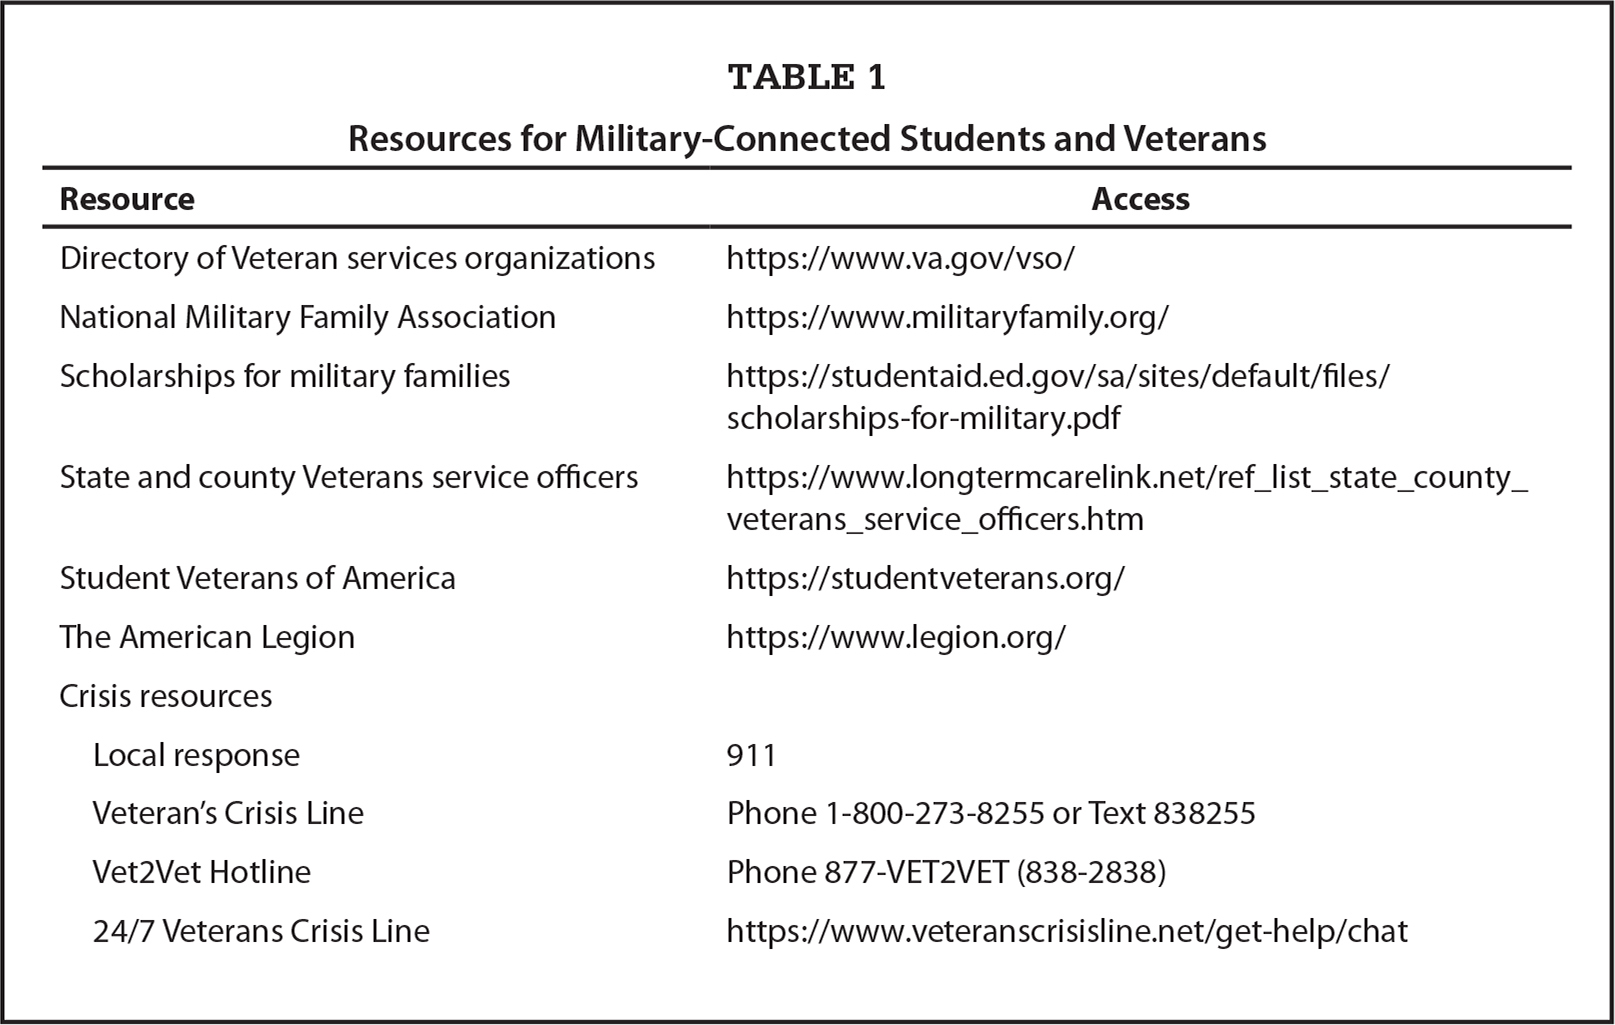 Resources for Military-Connected Students and Veterans